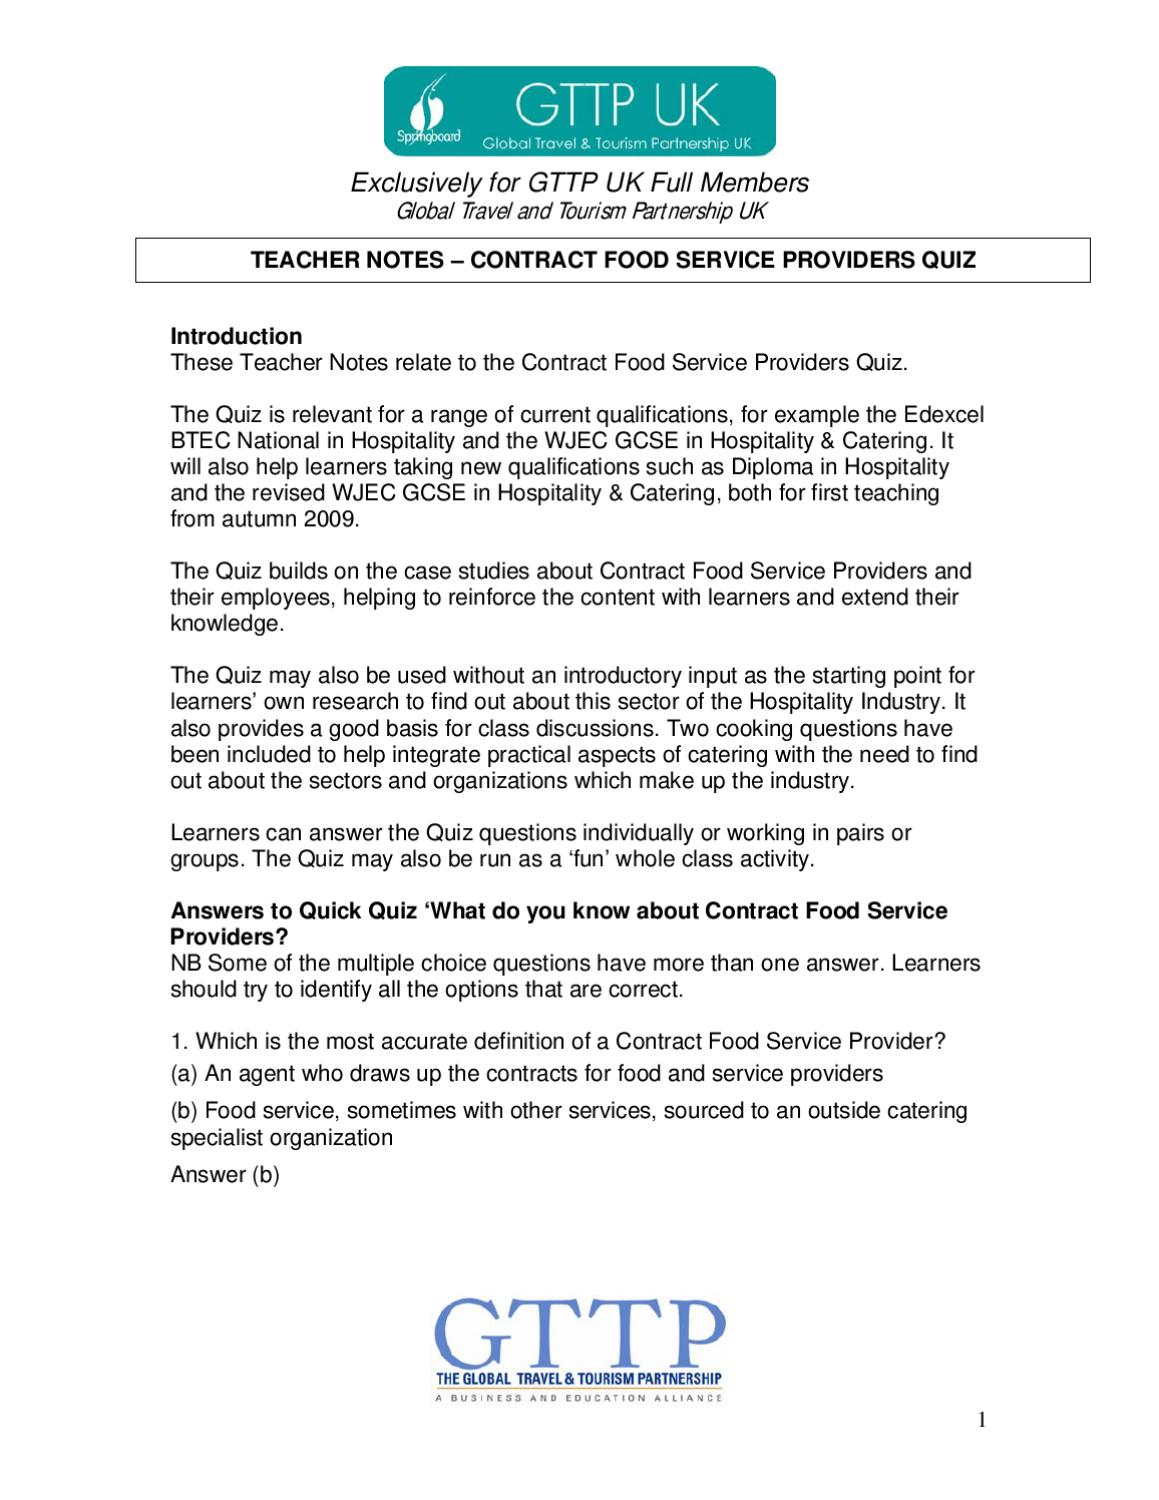 Contract Food Service Providers Quiz Teacher Notes by Resource ...